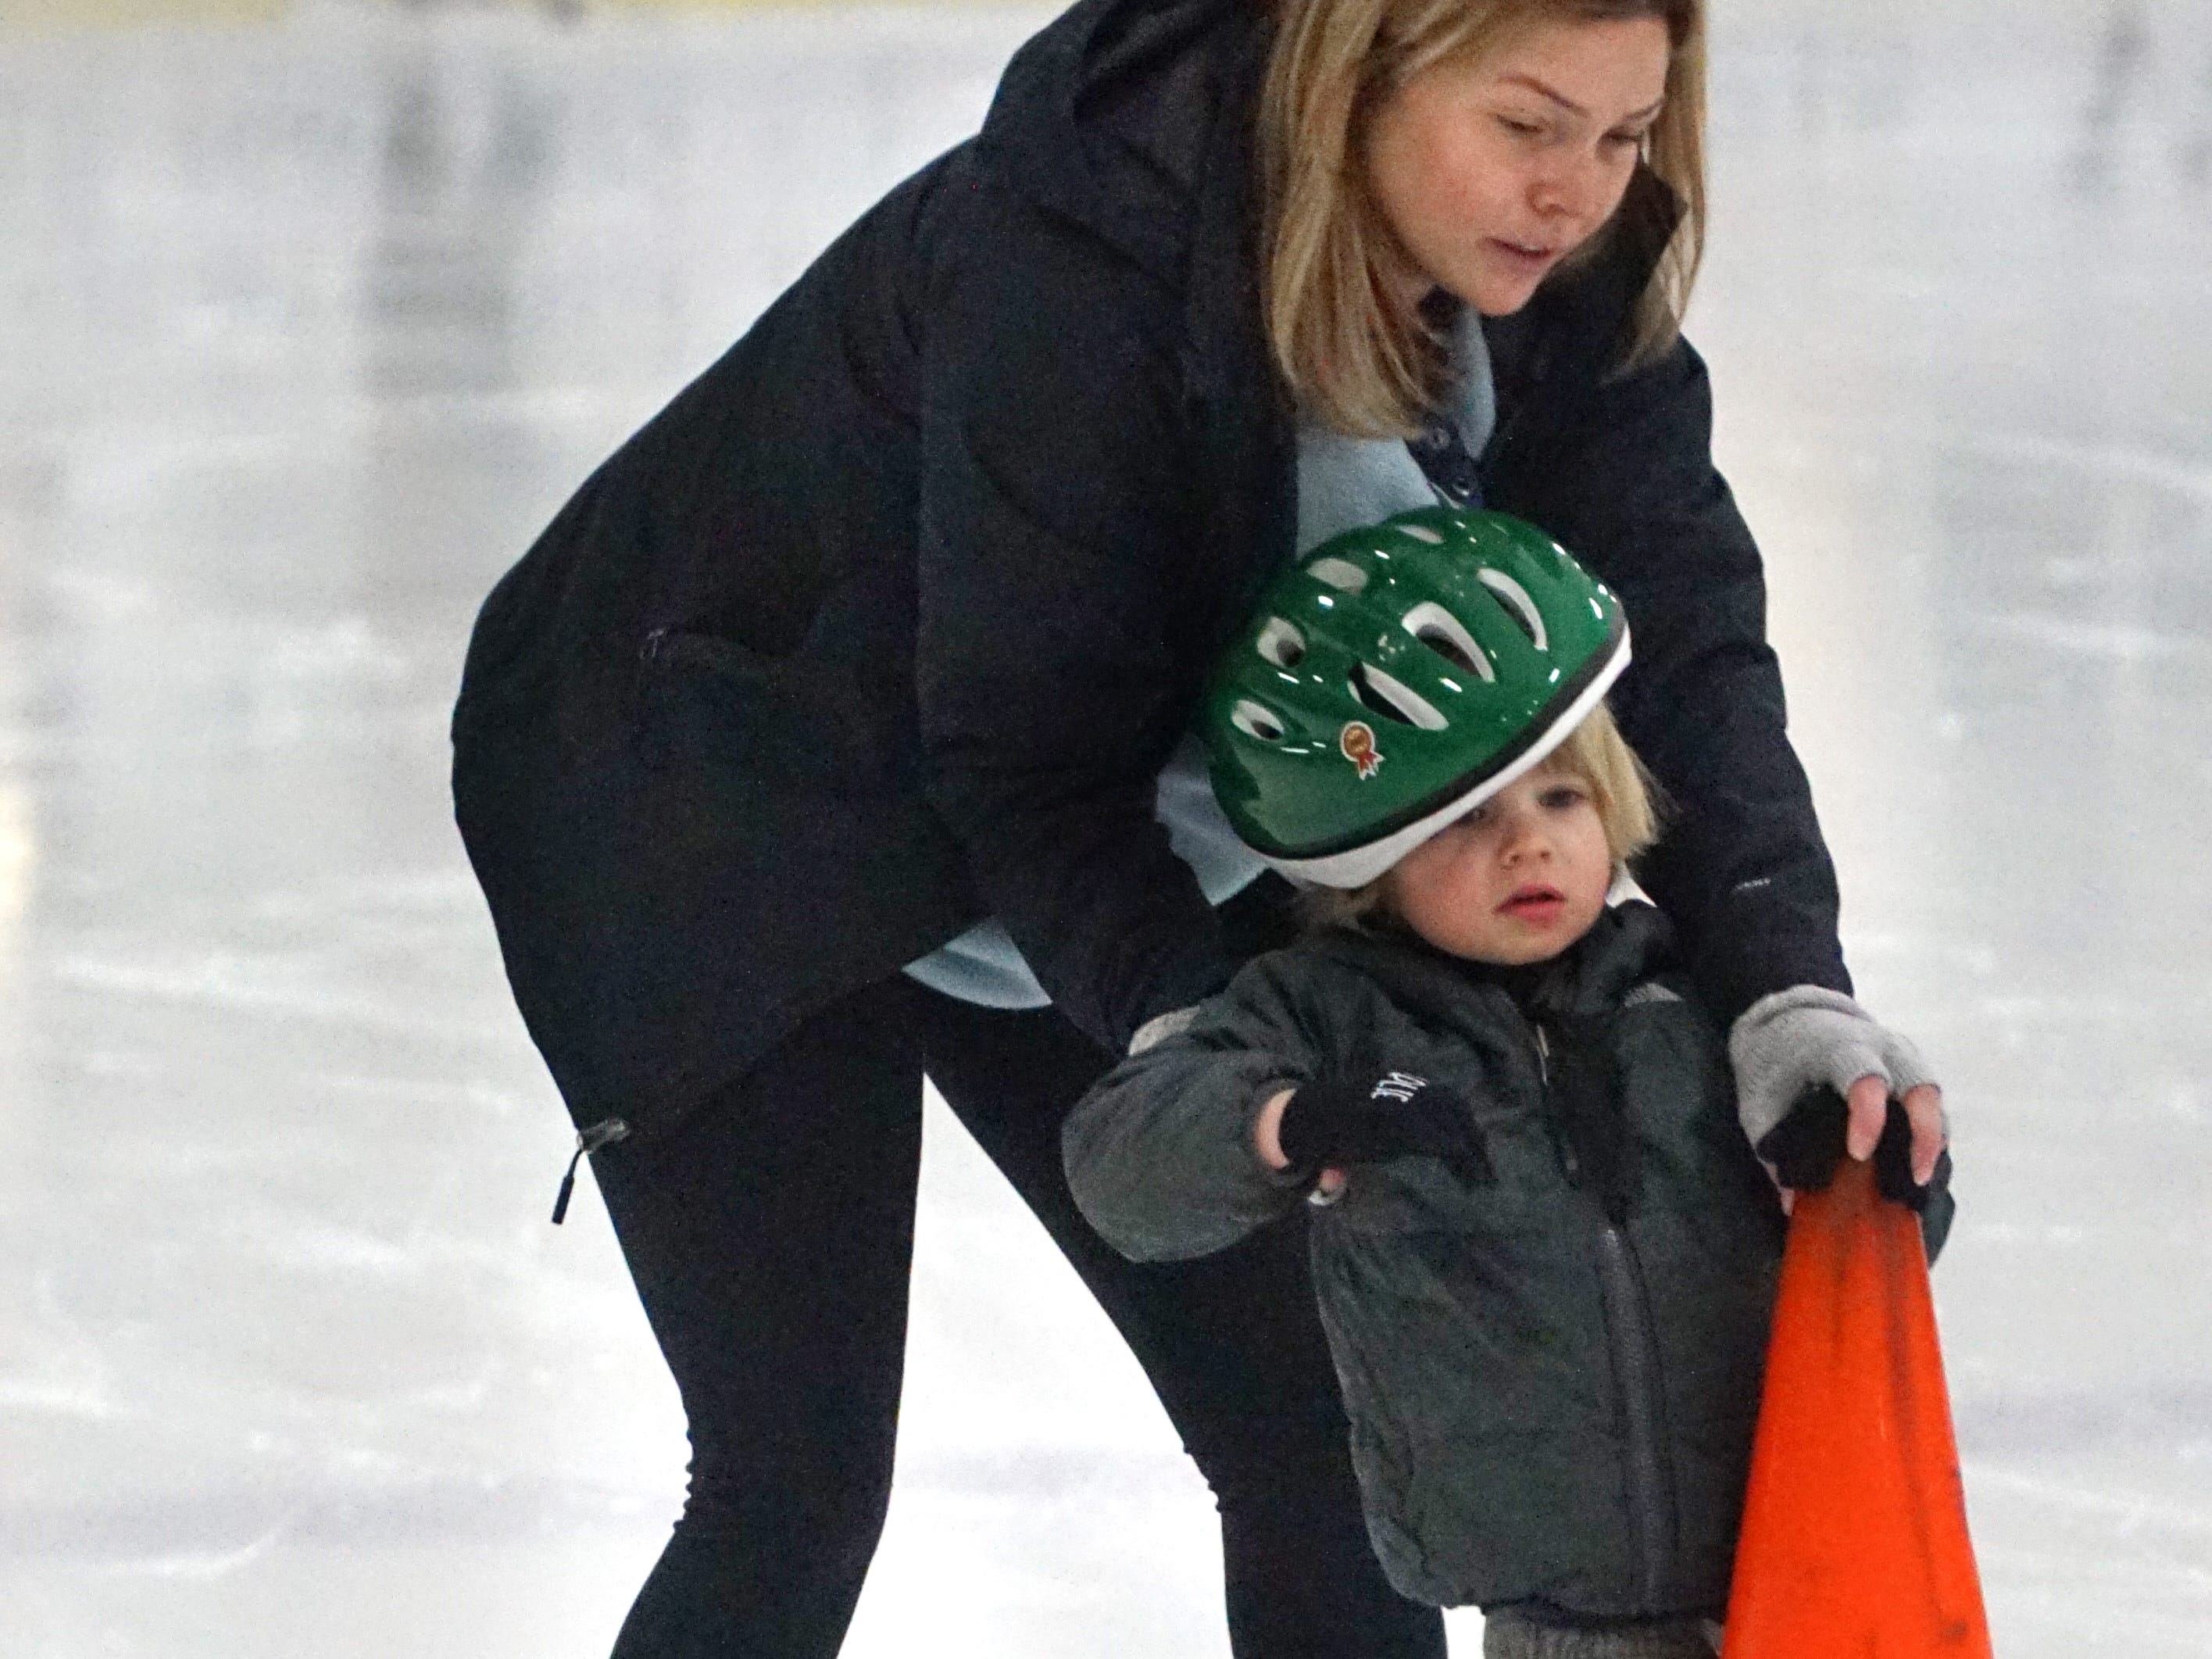 Stacey Marks helps her son Charlie, 3, around at the Birmingham Ice Arena on Feb. 22.